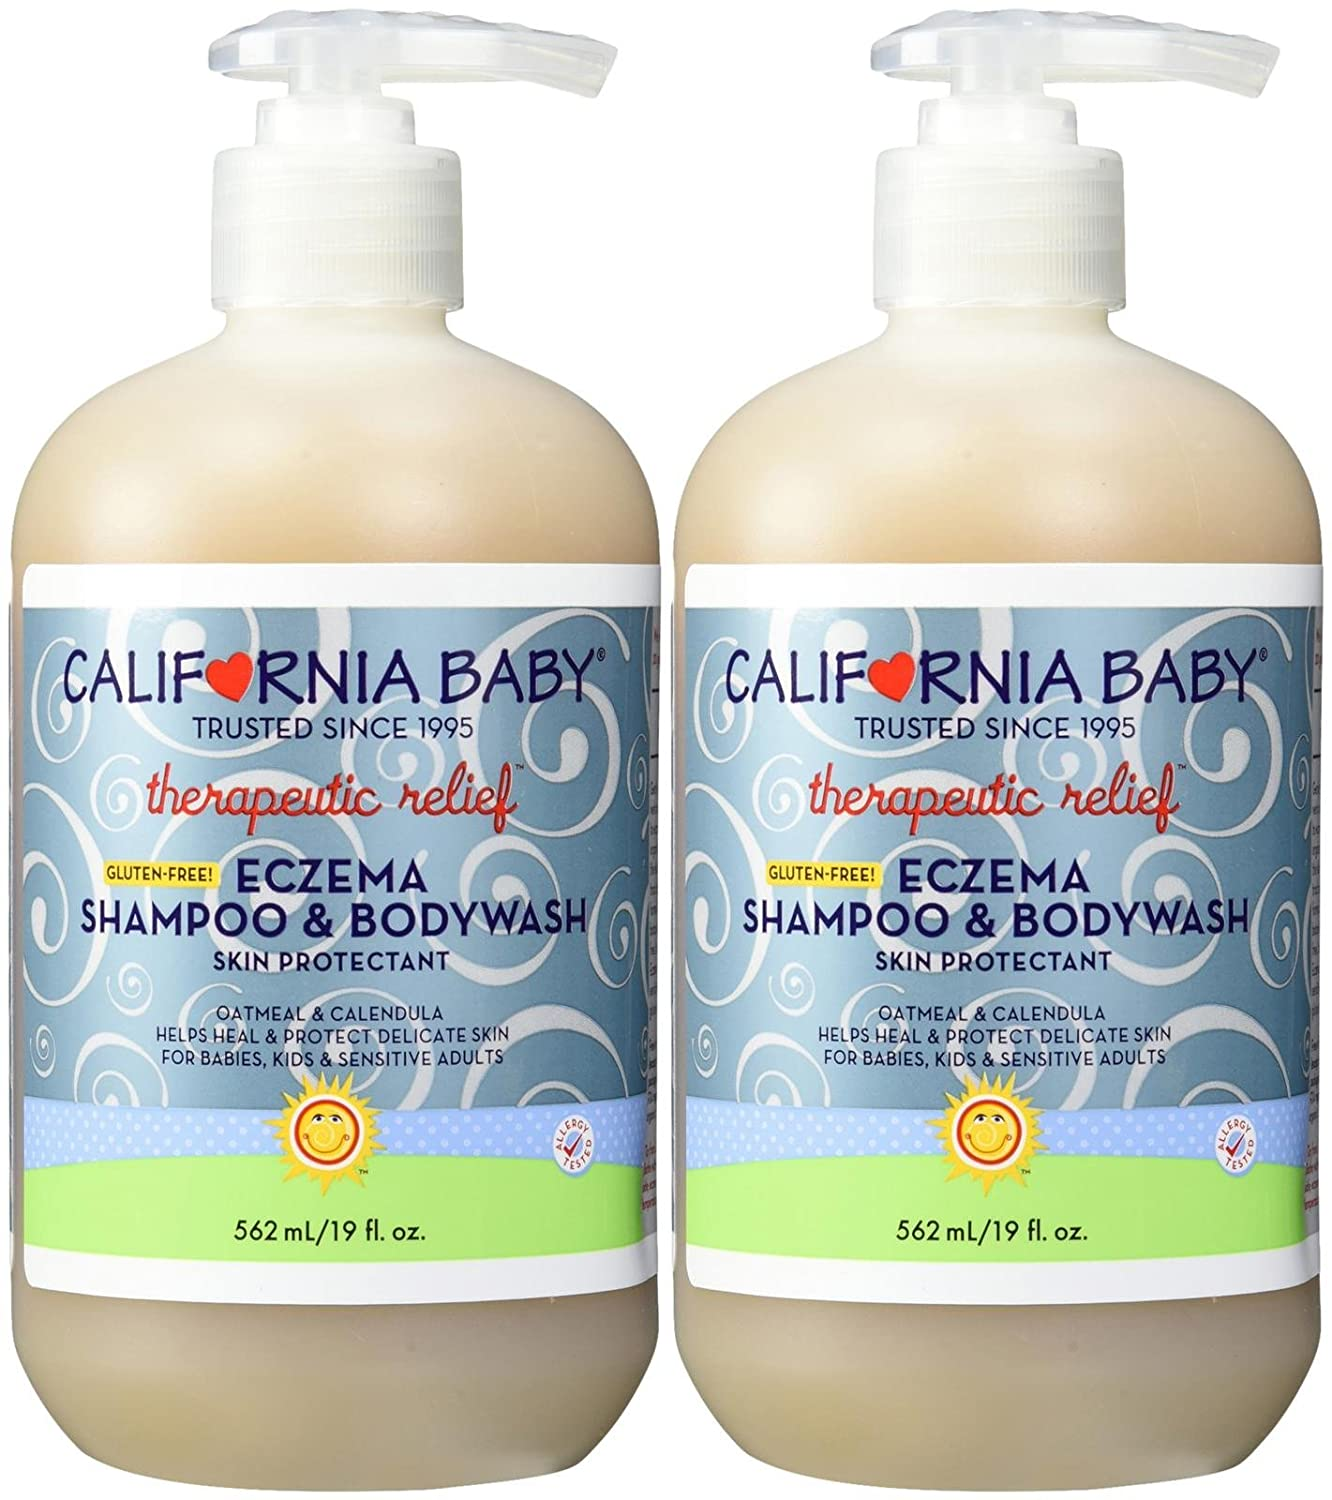 Amazon.com: California Baby Eczema Shampoo & Bodywash - No Fragrance ...